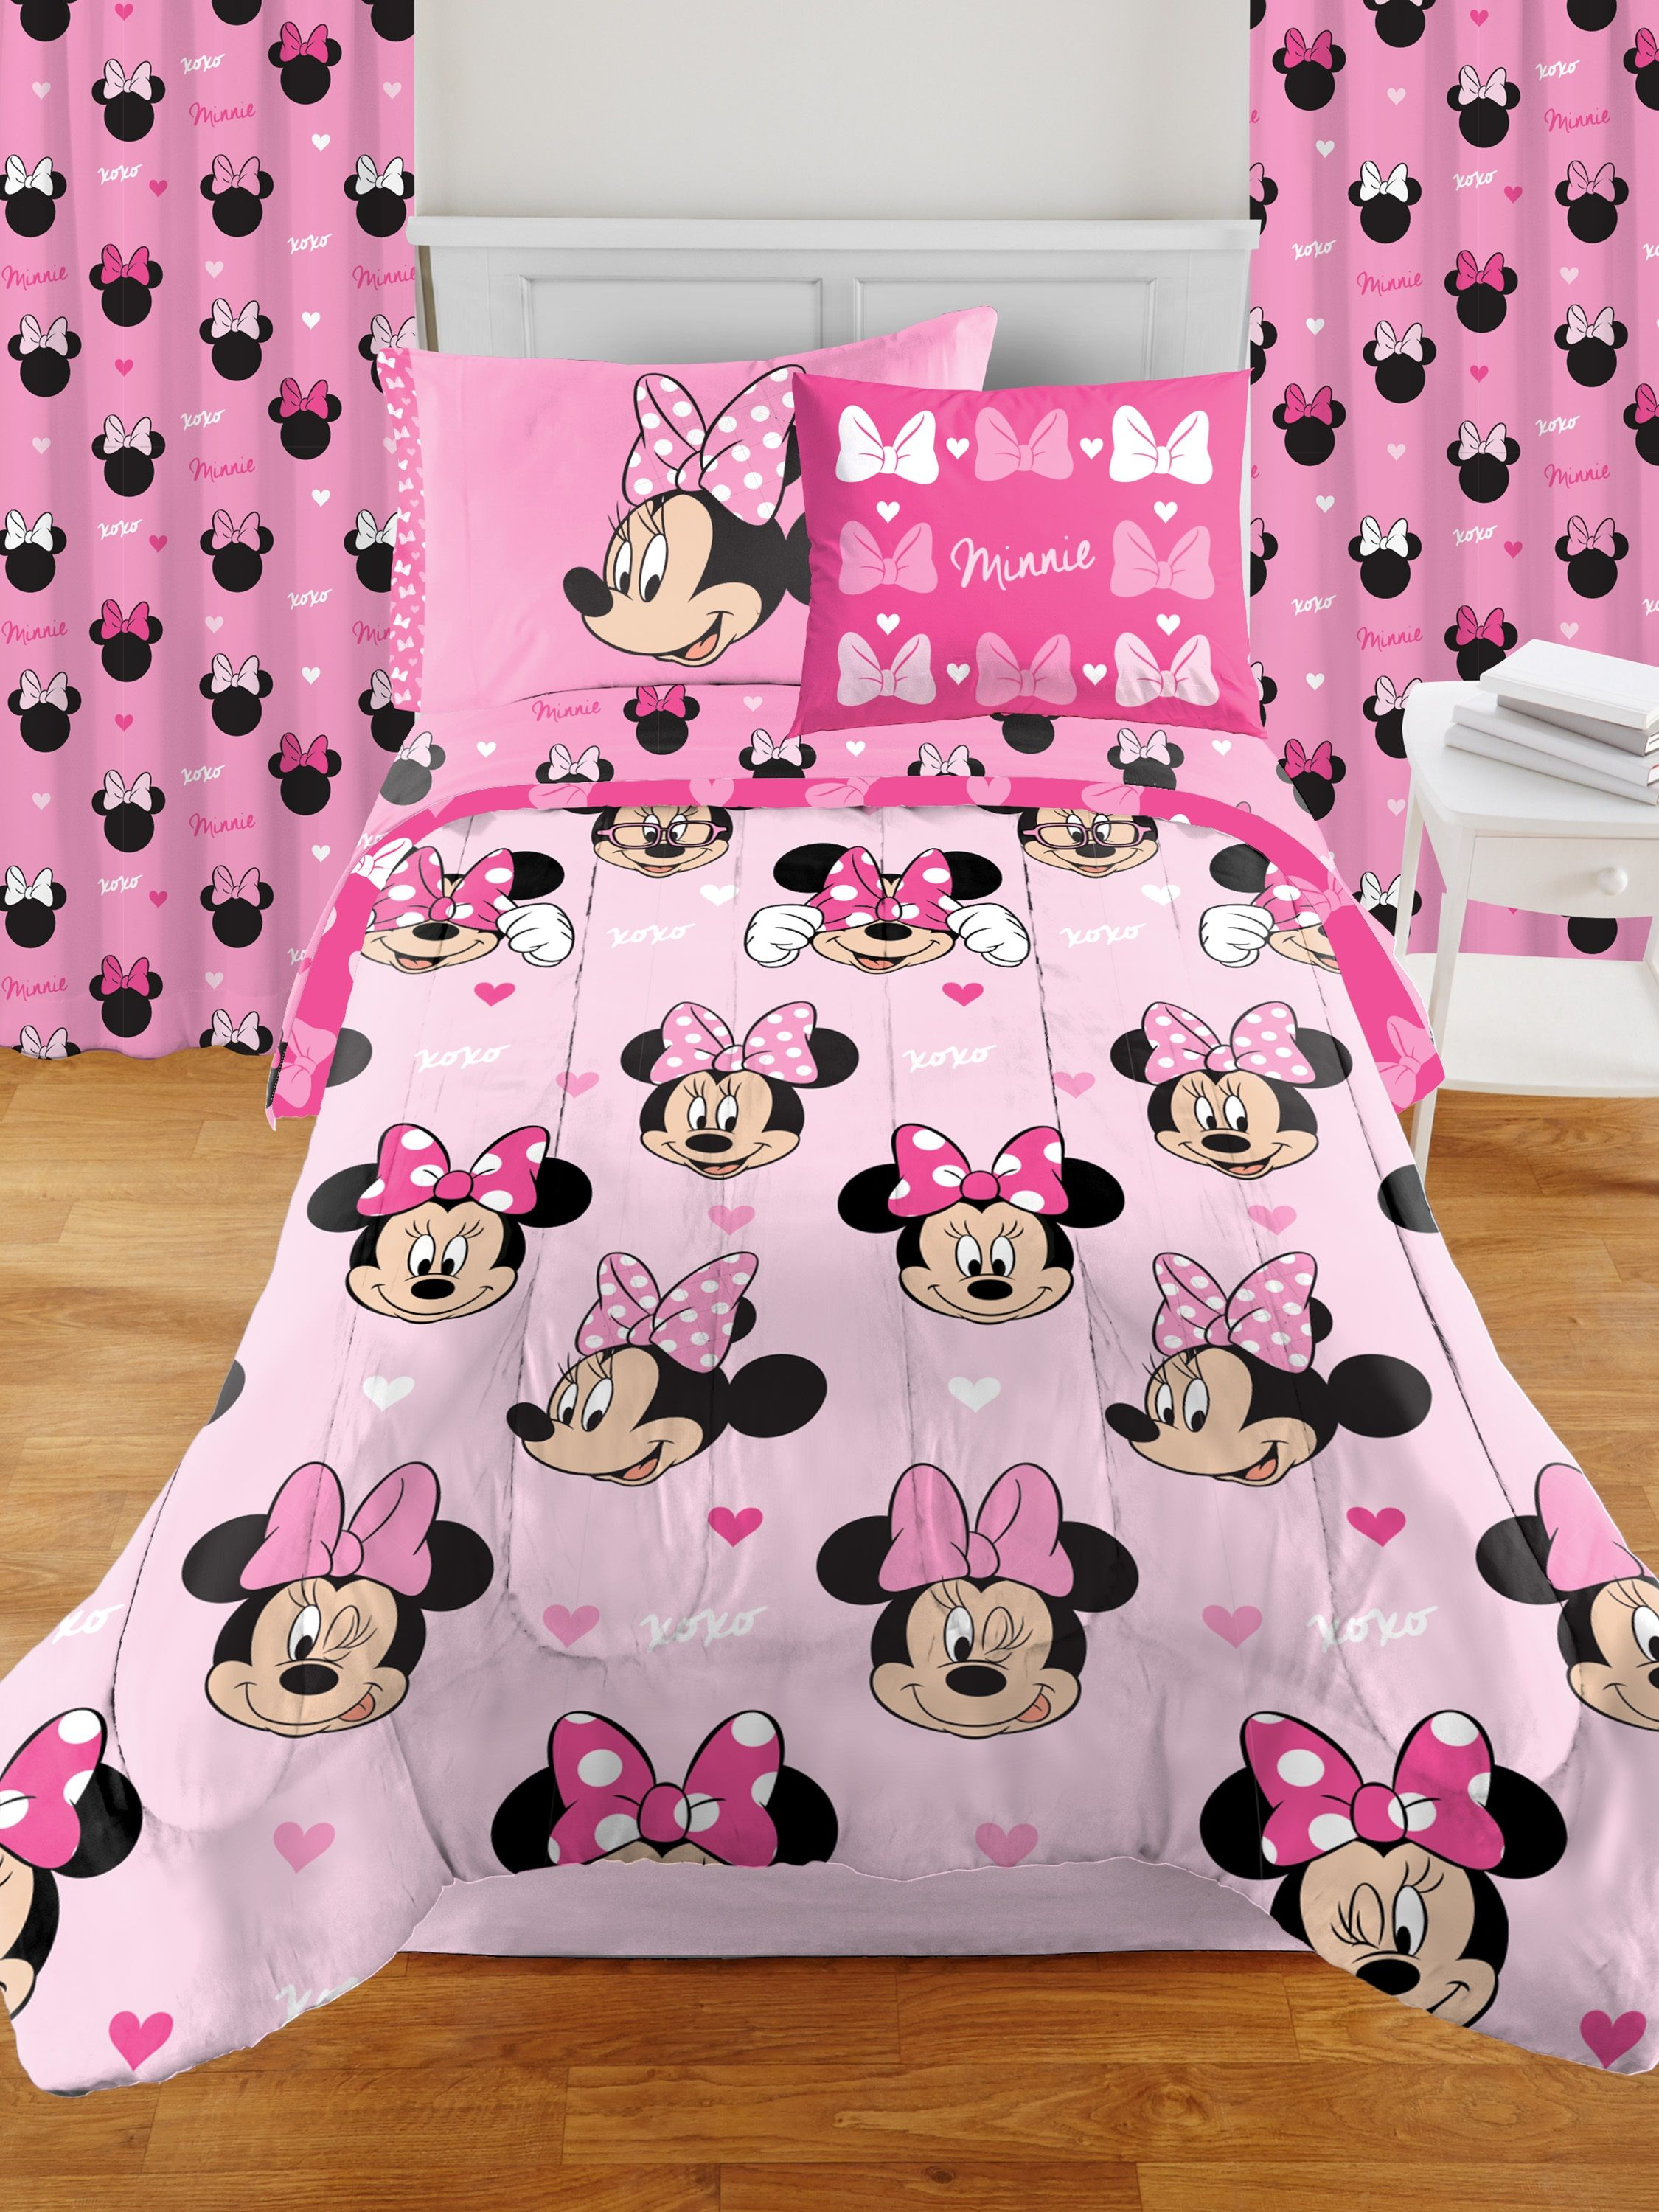 Minnie Mouse Room In A Box Set Includes Bedding Set And Drapes Walmart Com Minnie Mouse Room Decor Full Bedding Sets Minnie Mouse Bedroom